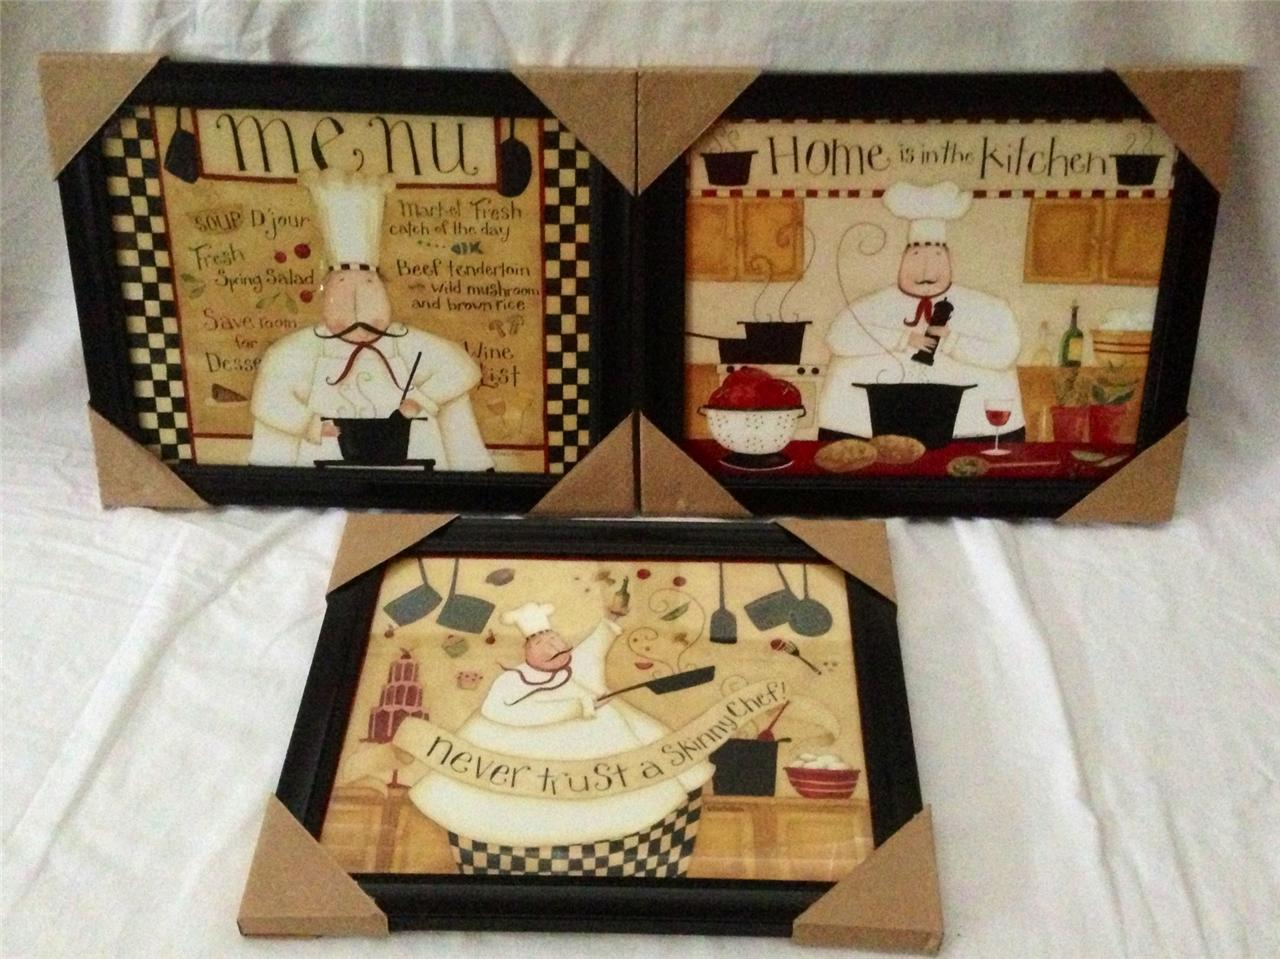 Http Ebay Com Itm Fat Chef Italian Bistro Cafe Home Kitchen Interior Plaque Picture Lot Decor Set 140970049468 Pt Plaques Signs Hash Item20d2783fbc